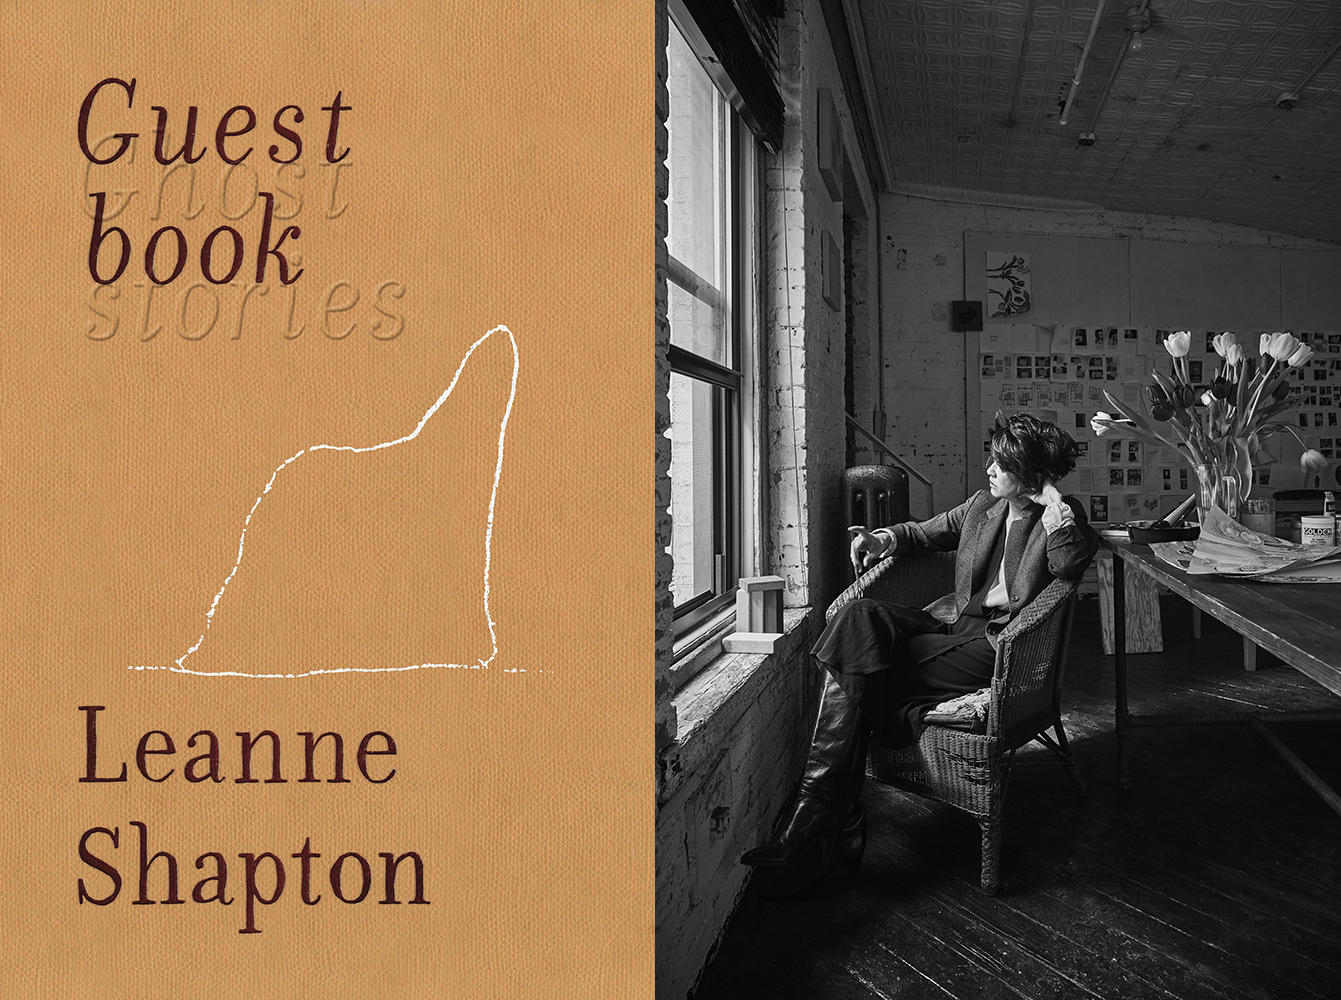 LEANNE SHAPTON, GUESTBOOK - One of our most imaginative writers and artists explores the visitations that haunt us in the midst of life, and reinvents the very way we narrate experience.